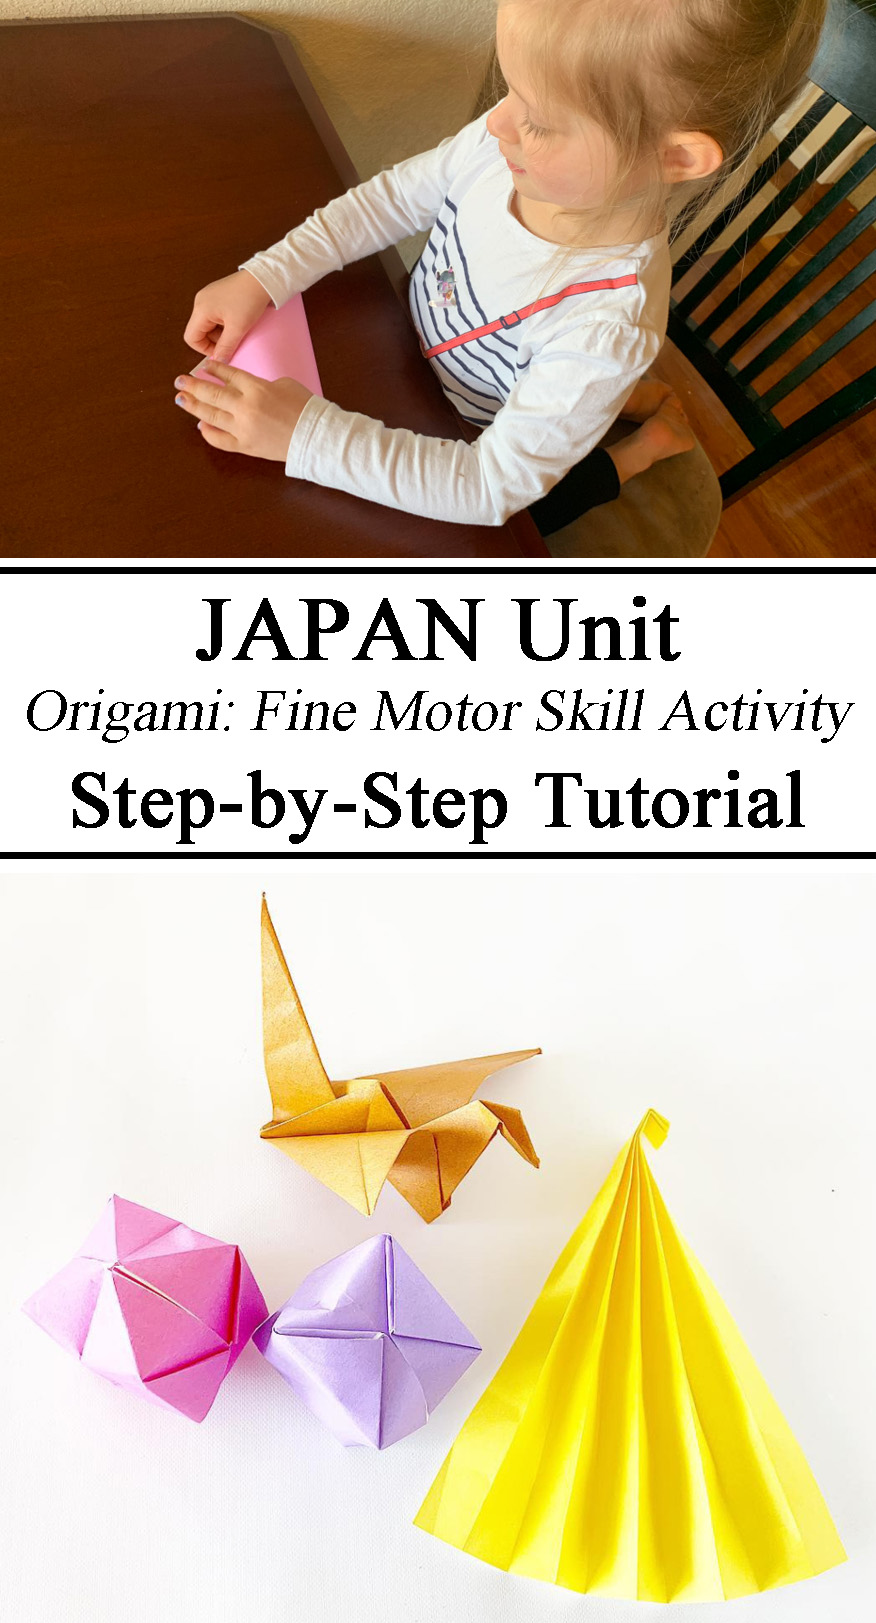 Japan Unit, Little Passports, Origami, Fine Motor Skills Activity, Preschool, Kindergarten, Montessori, Inspired, Homeschool, Waldorf, Tutorial, Crane, Box, Fan, Paper Craft, Hands on Learning, Educational, DIY, How-To, How to